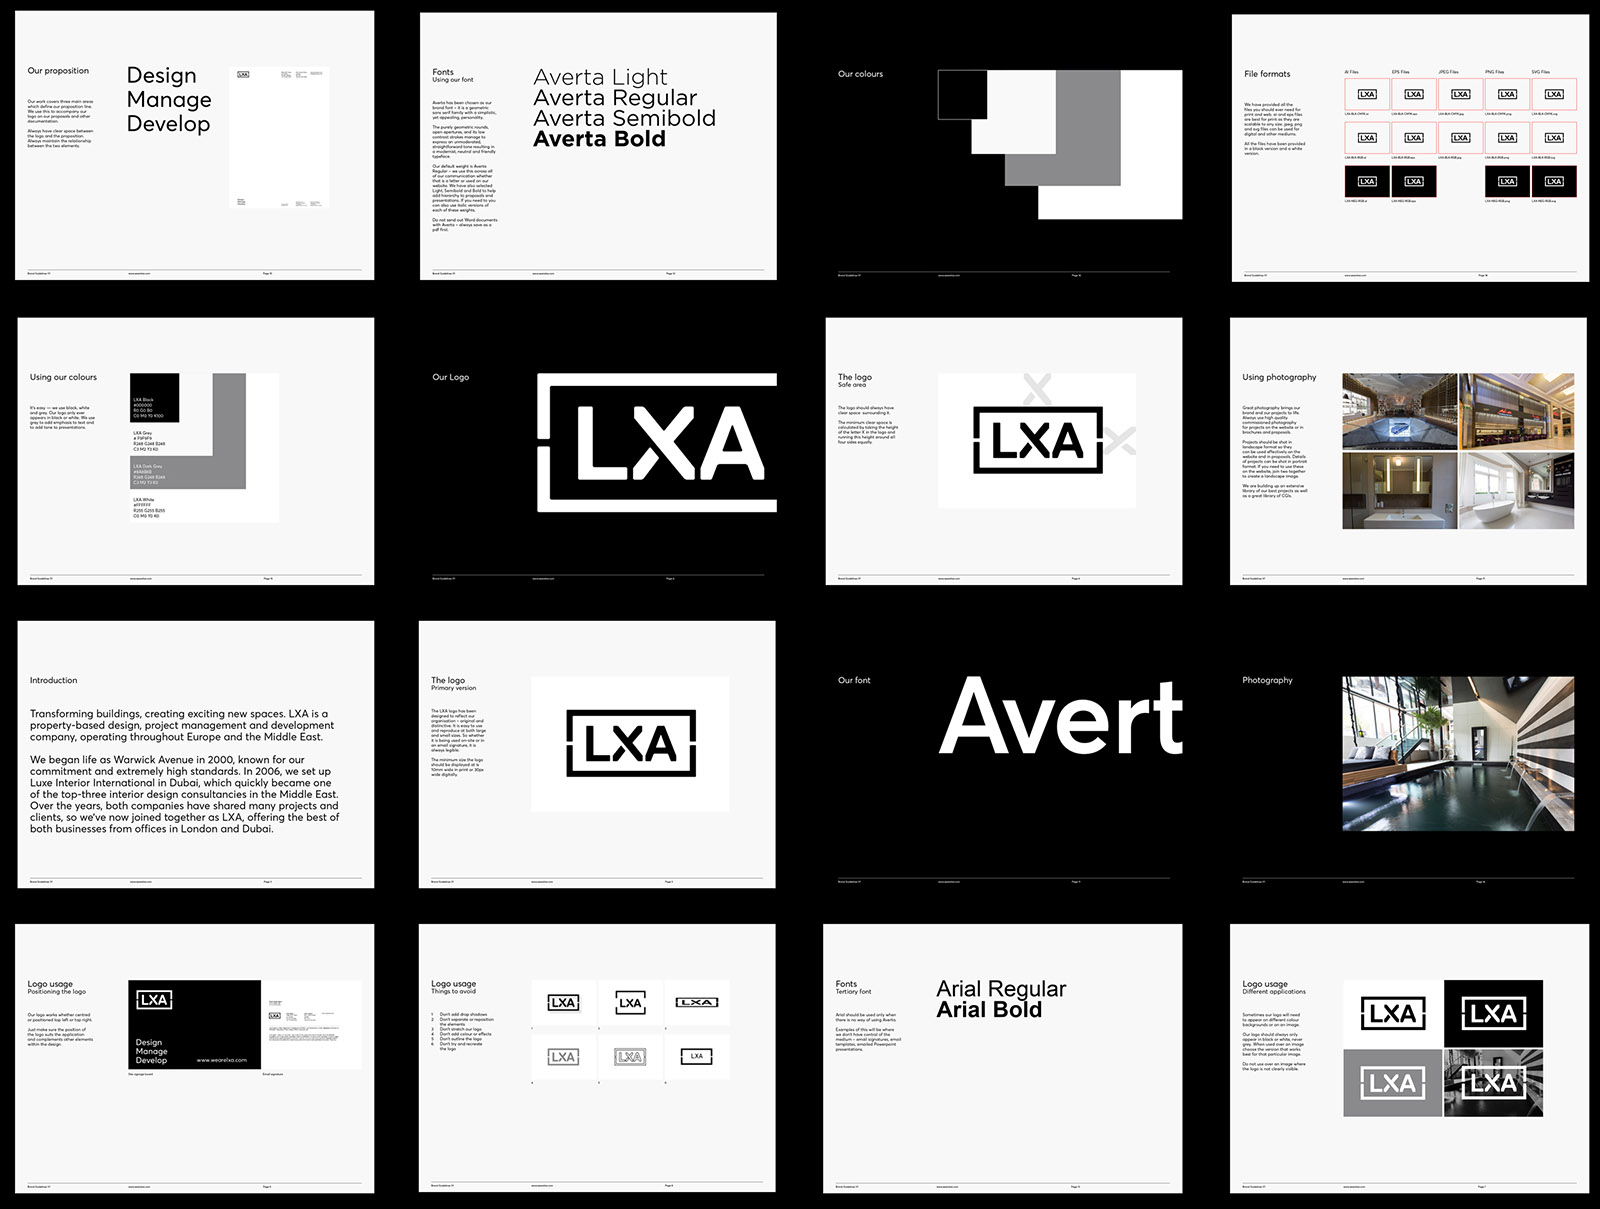 lxa brand guidelines design by Leeds based Freelance Designer Neil Holroyd